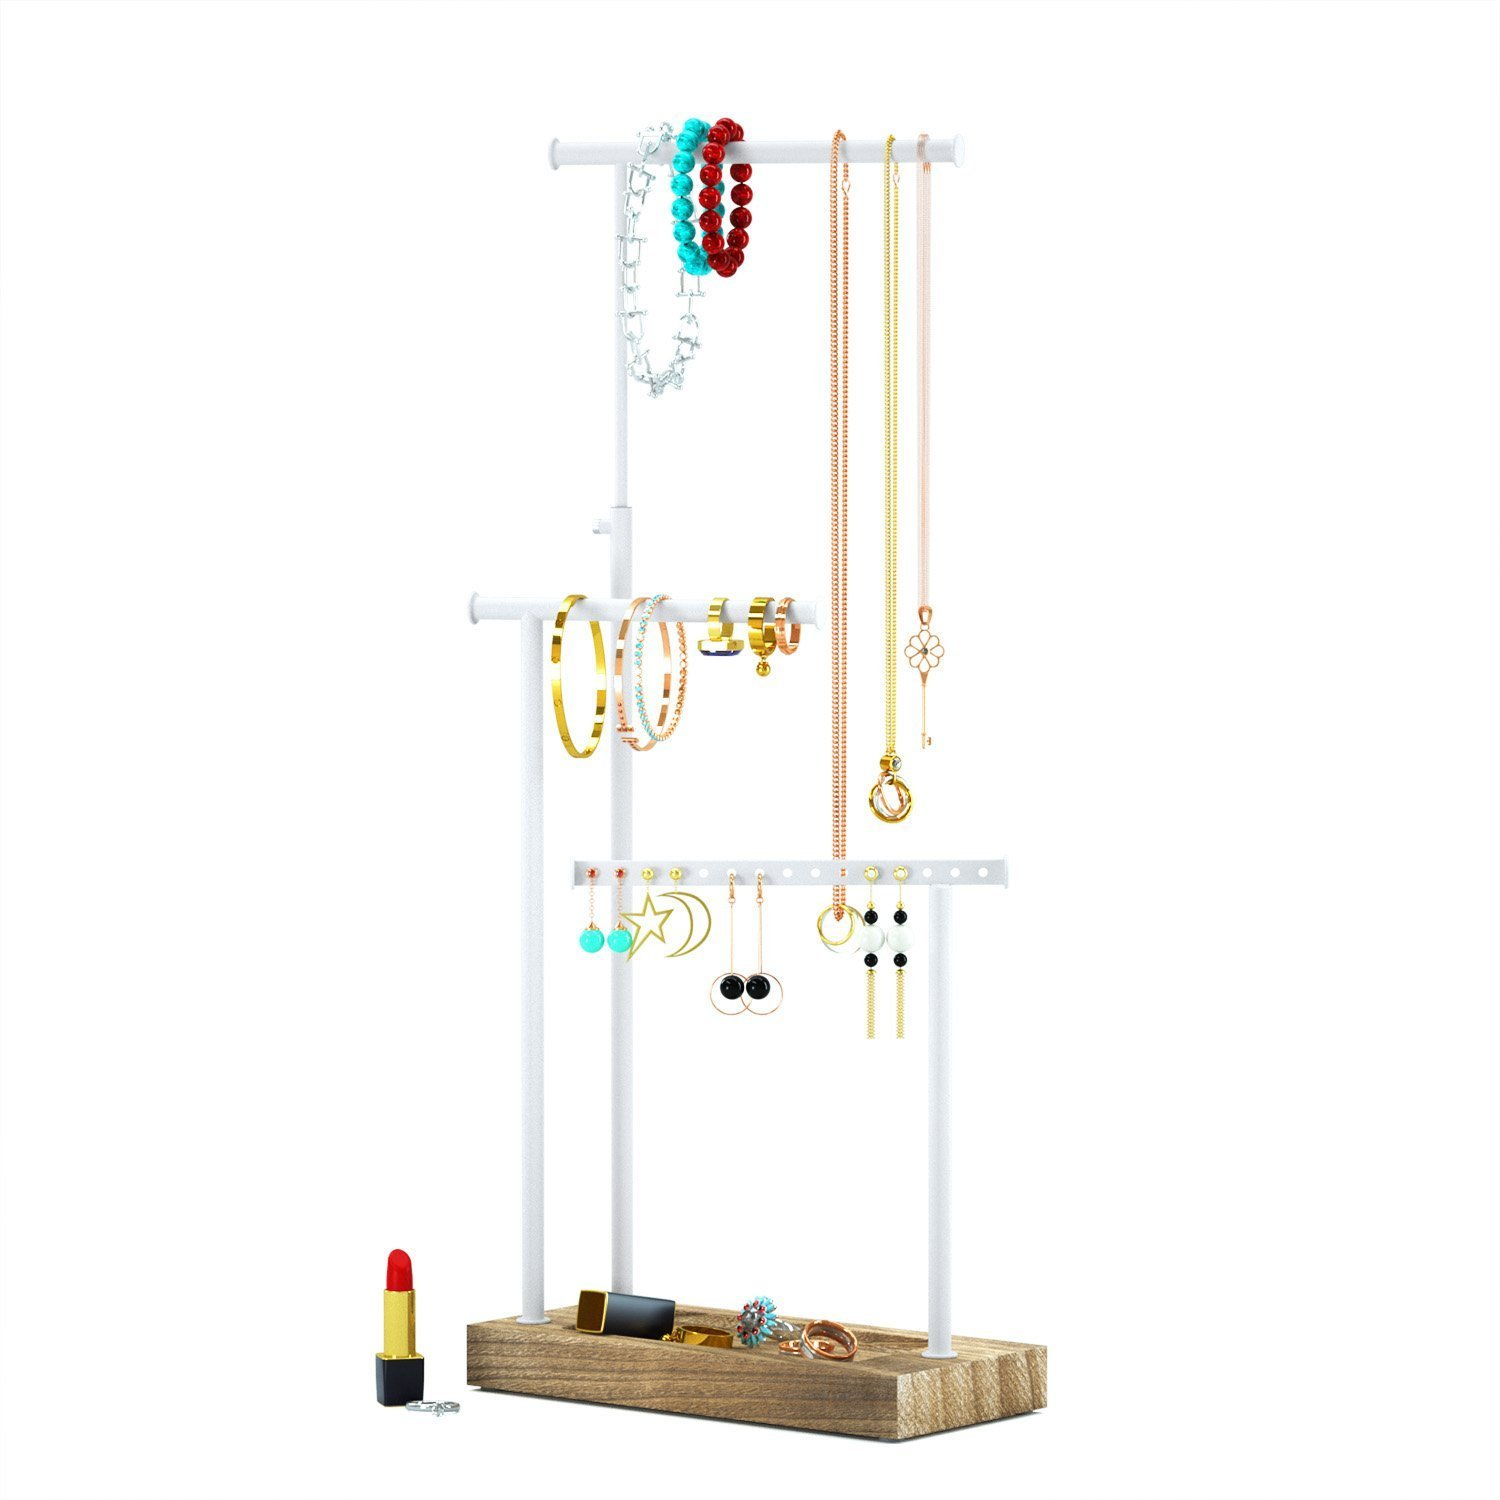 RooLee Jewellery Stand/Necklace Holder Metal Jewellery Holder with Large Capacity for Necklace, Bracelet,and Earrings Storage (Torched Finish) SRIWATANA EU 200000002